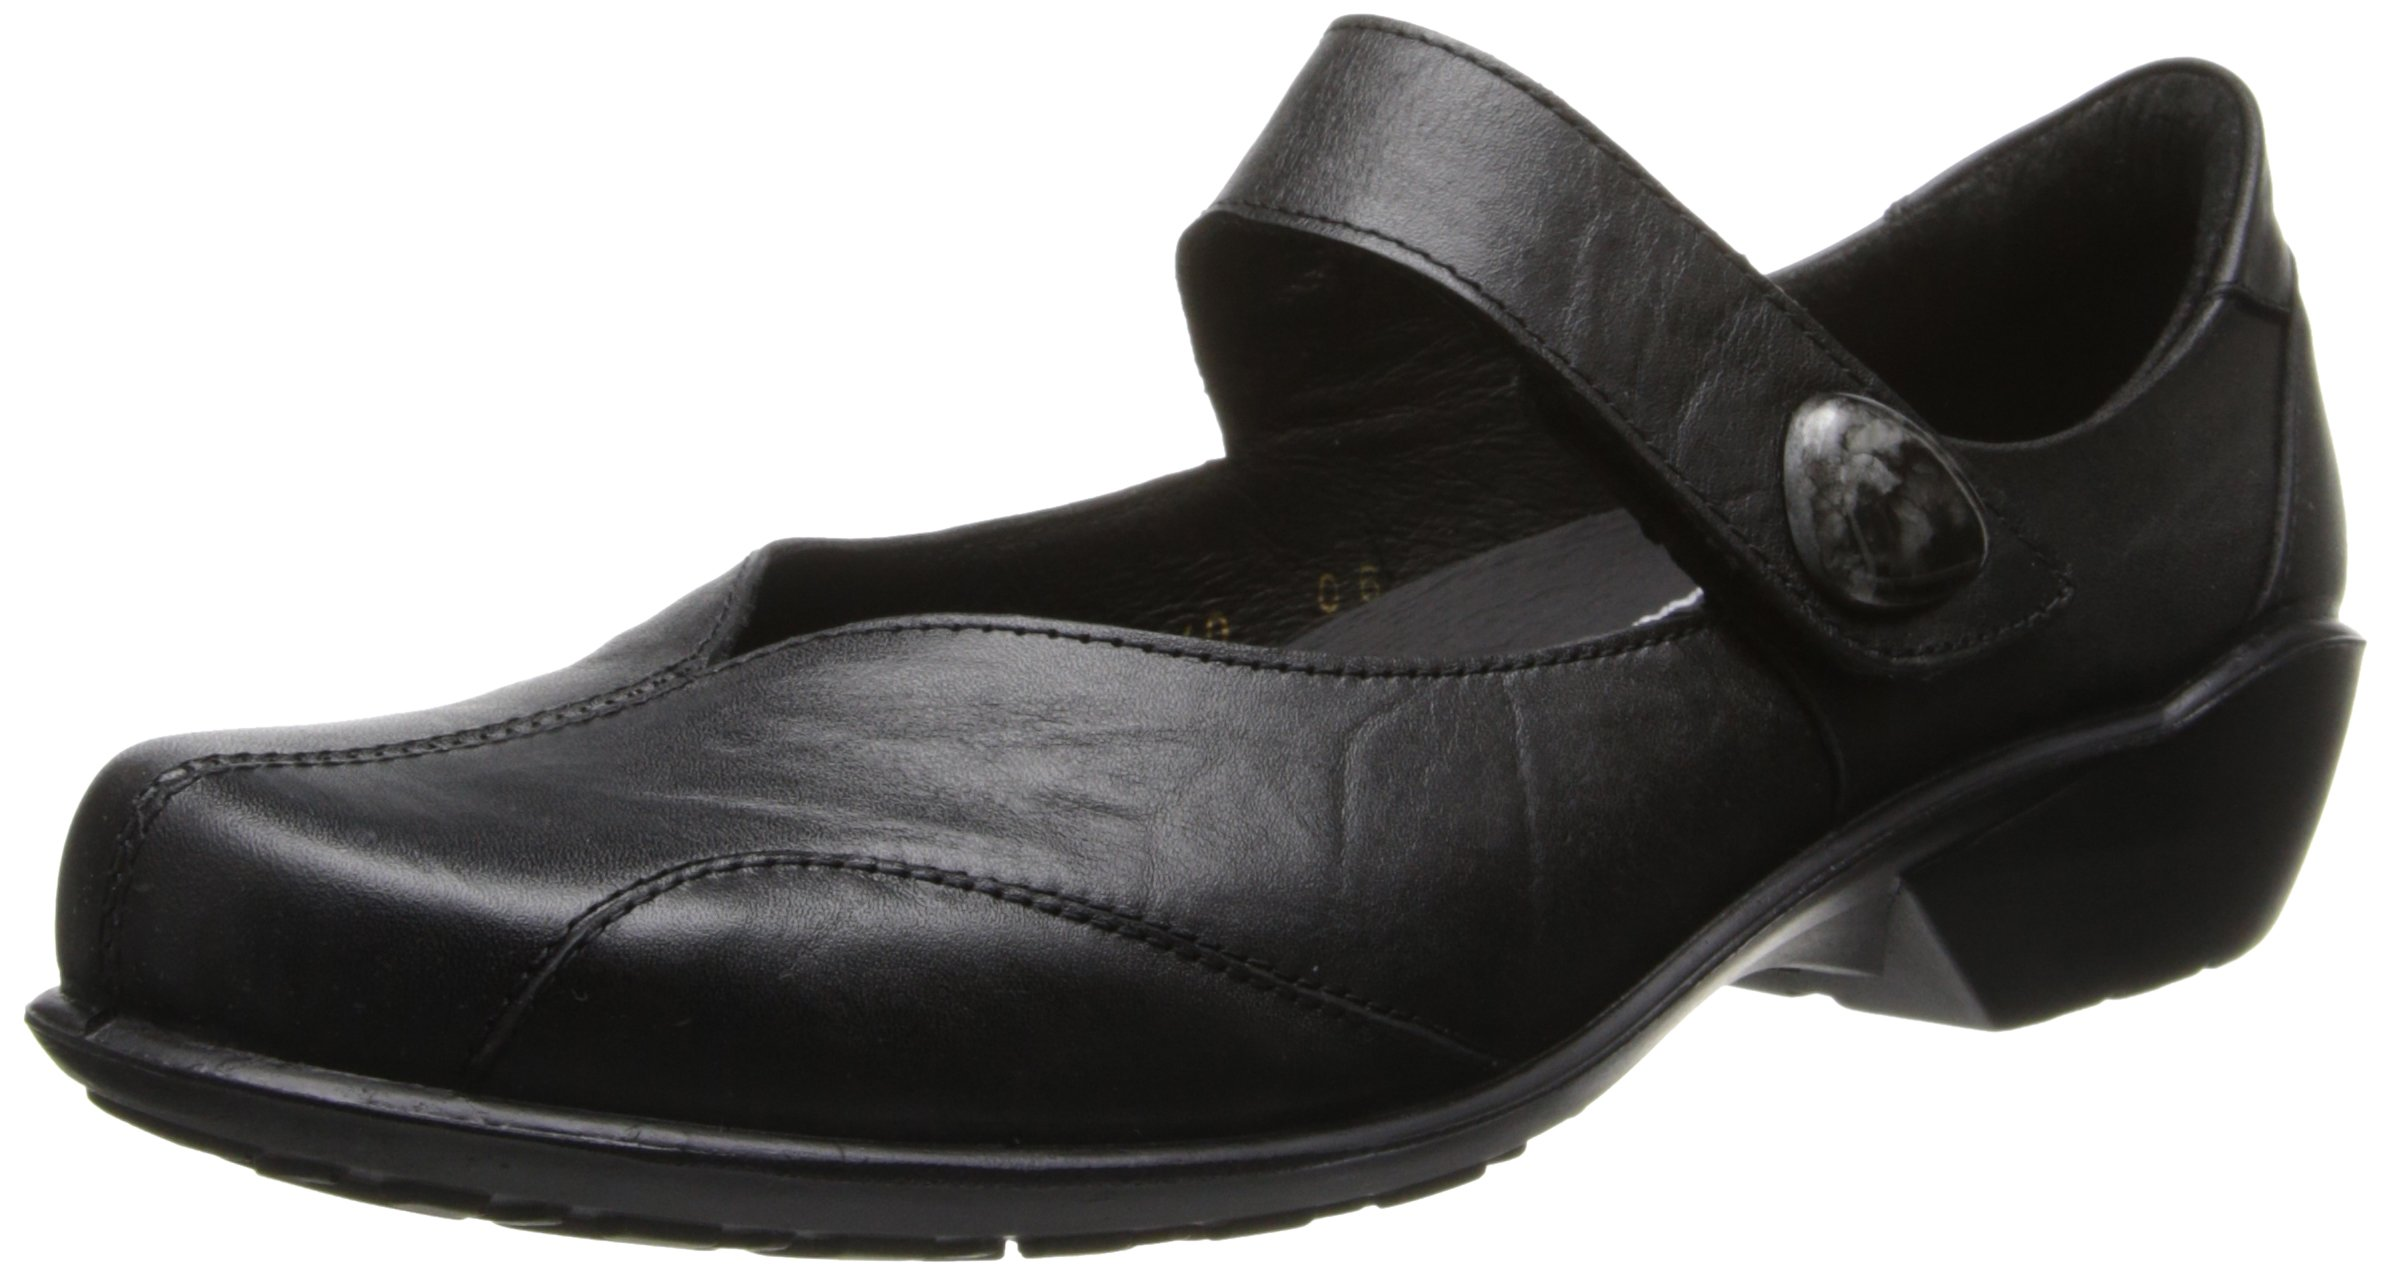 Romika Women's Citylight 87 Mary Jane Flat,Black,39 BR/8-8.5 M US by Romika (Image #1)